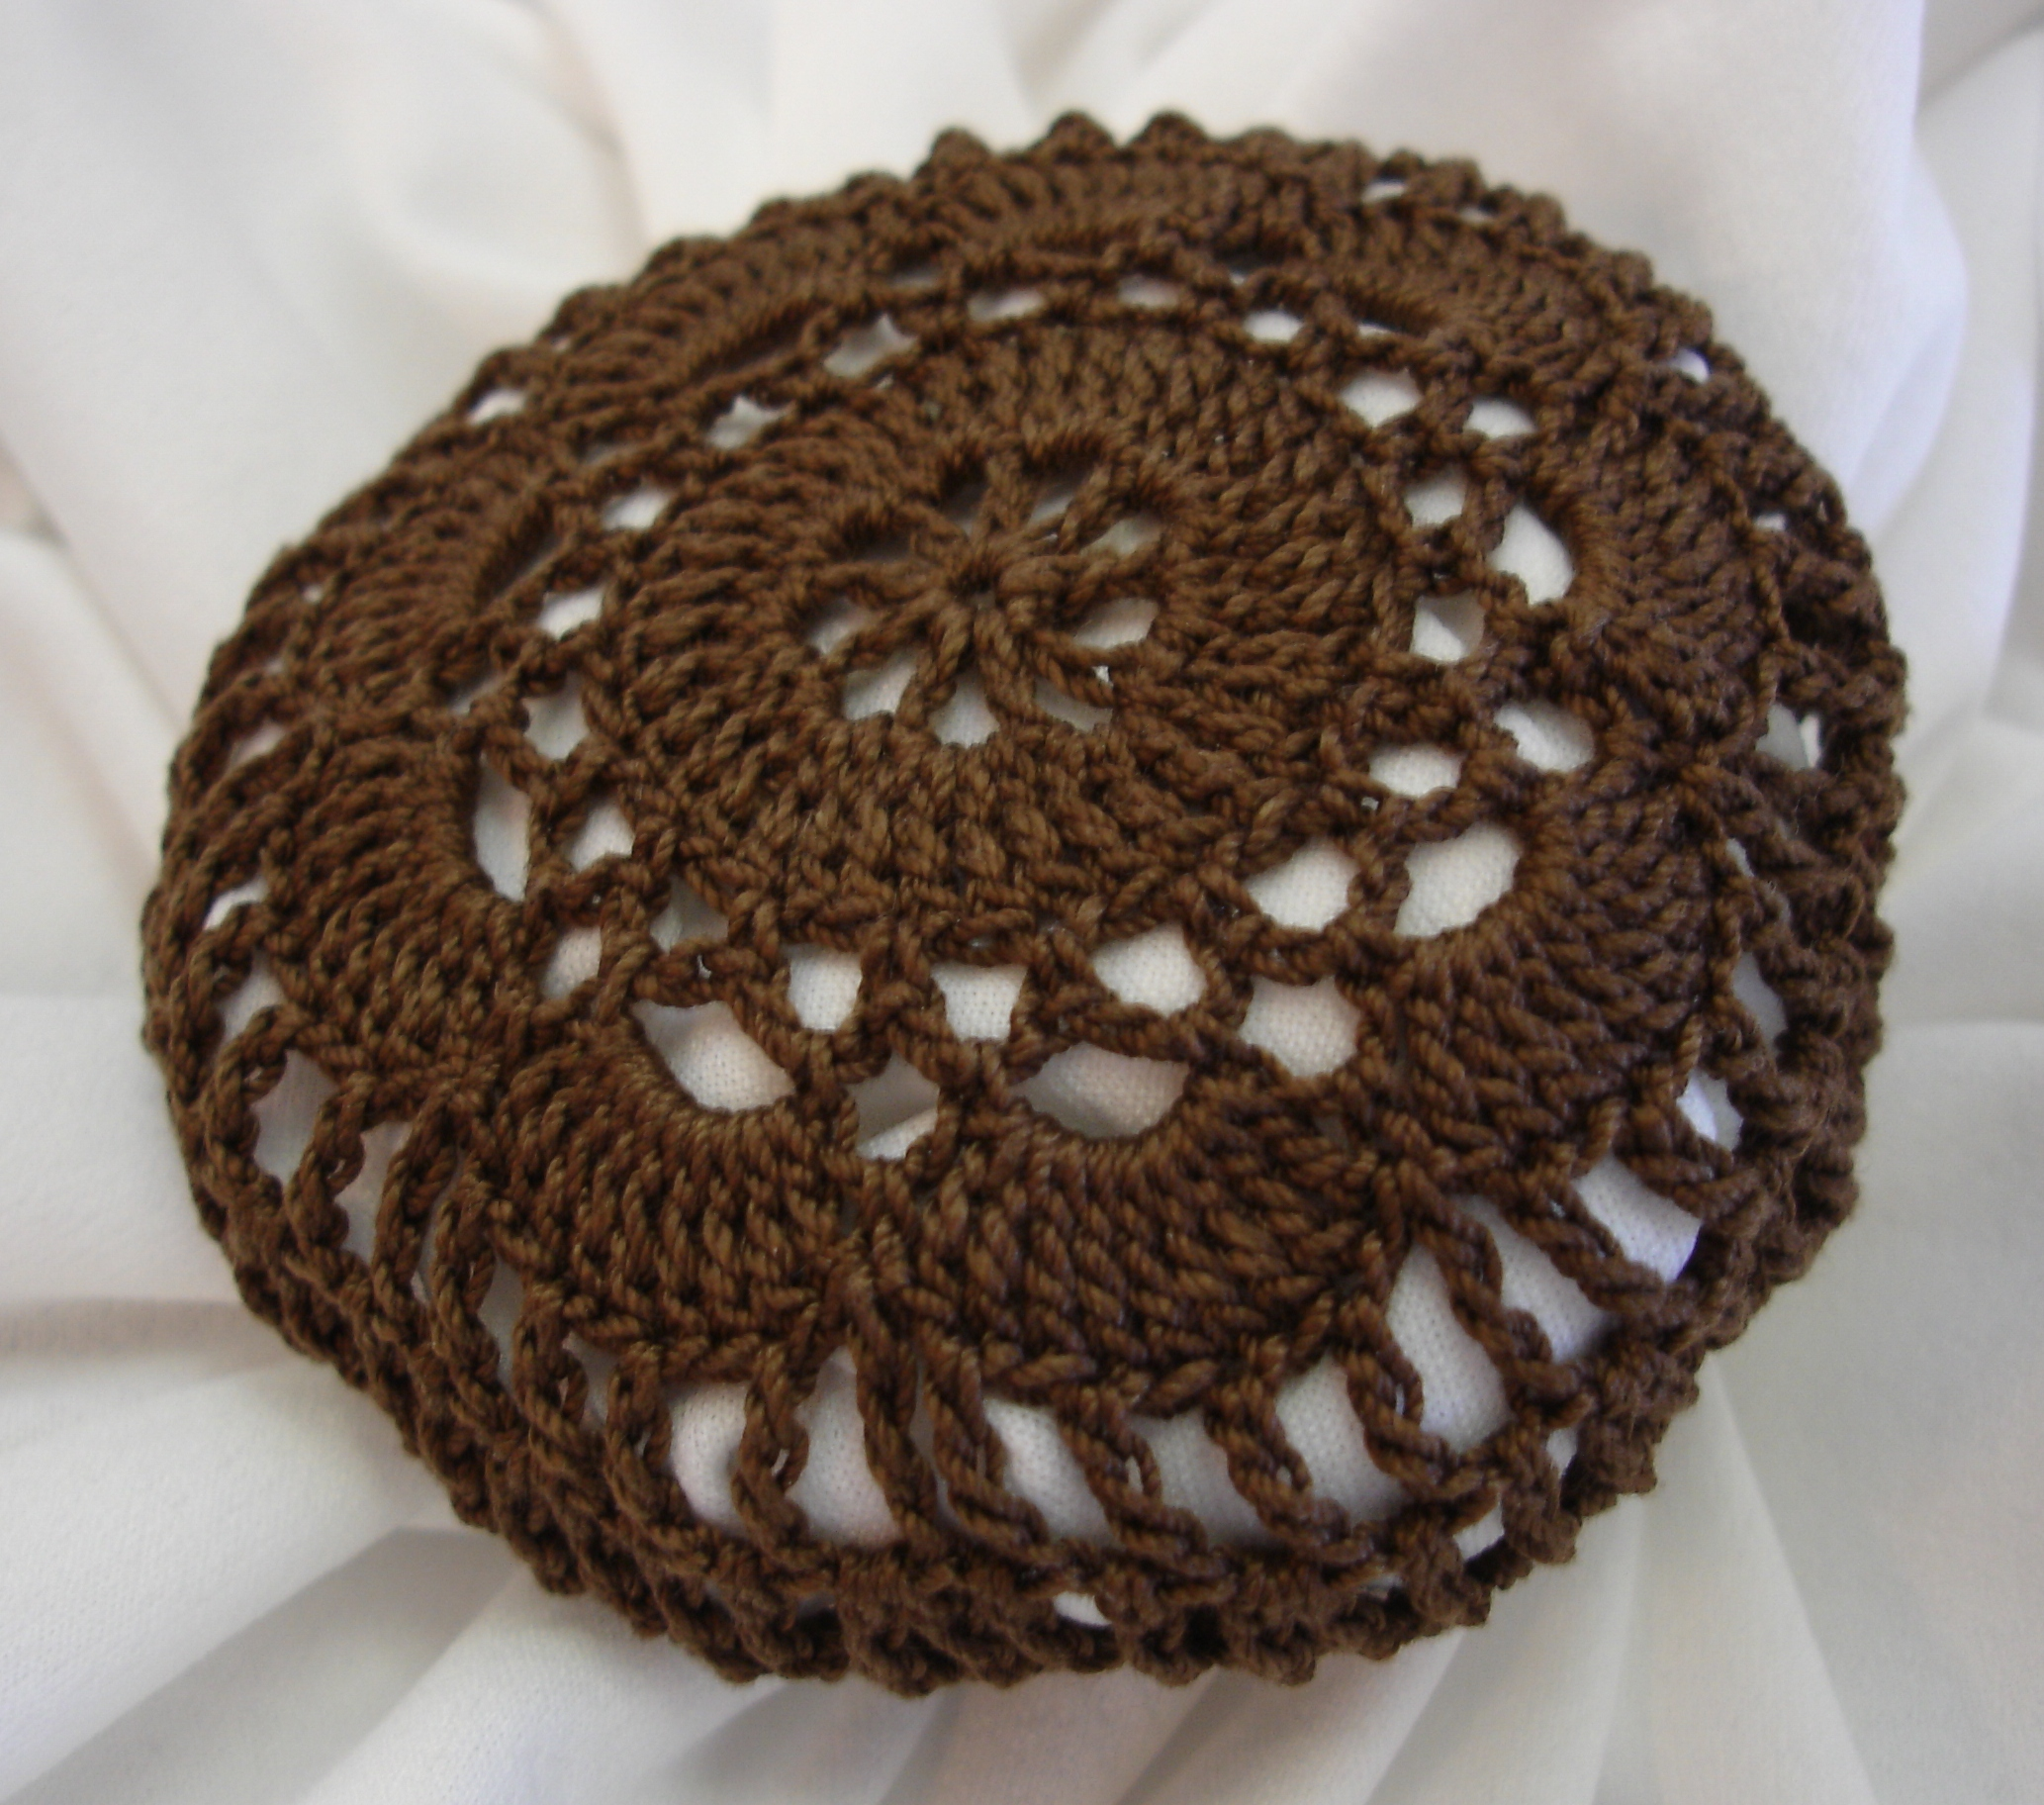 Crochet Hair Bun Cover : Set of 3 Crocheted Hair Net / Bun Covers Flower Style merrydeals4u